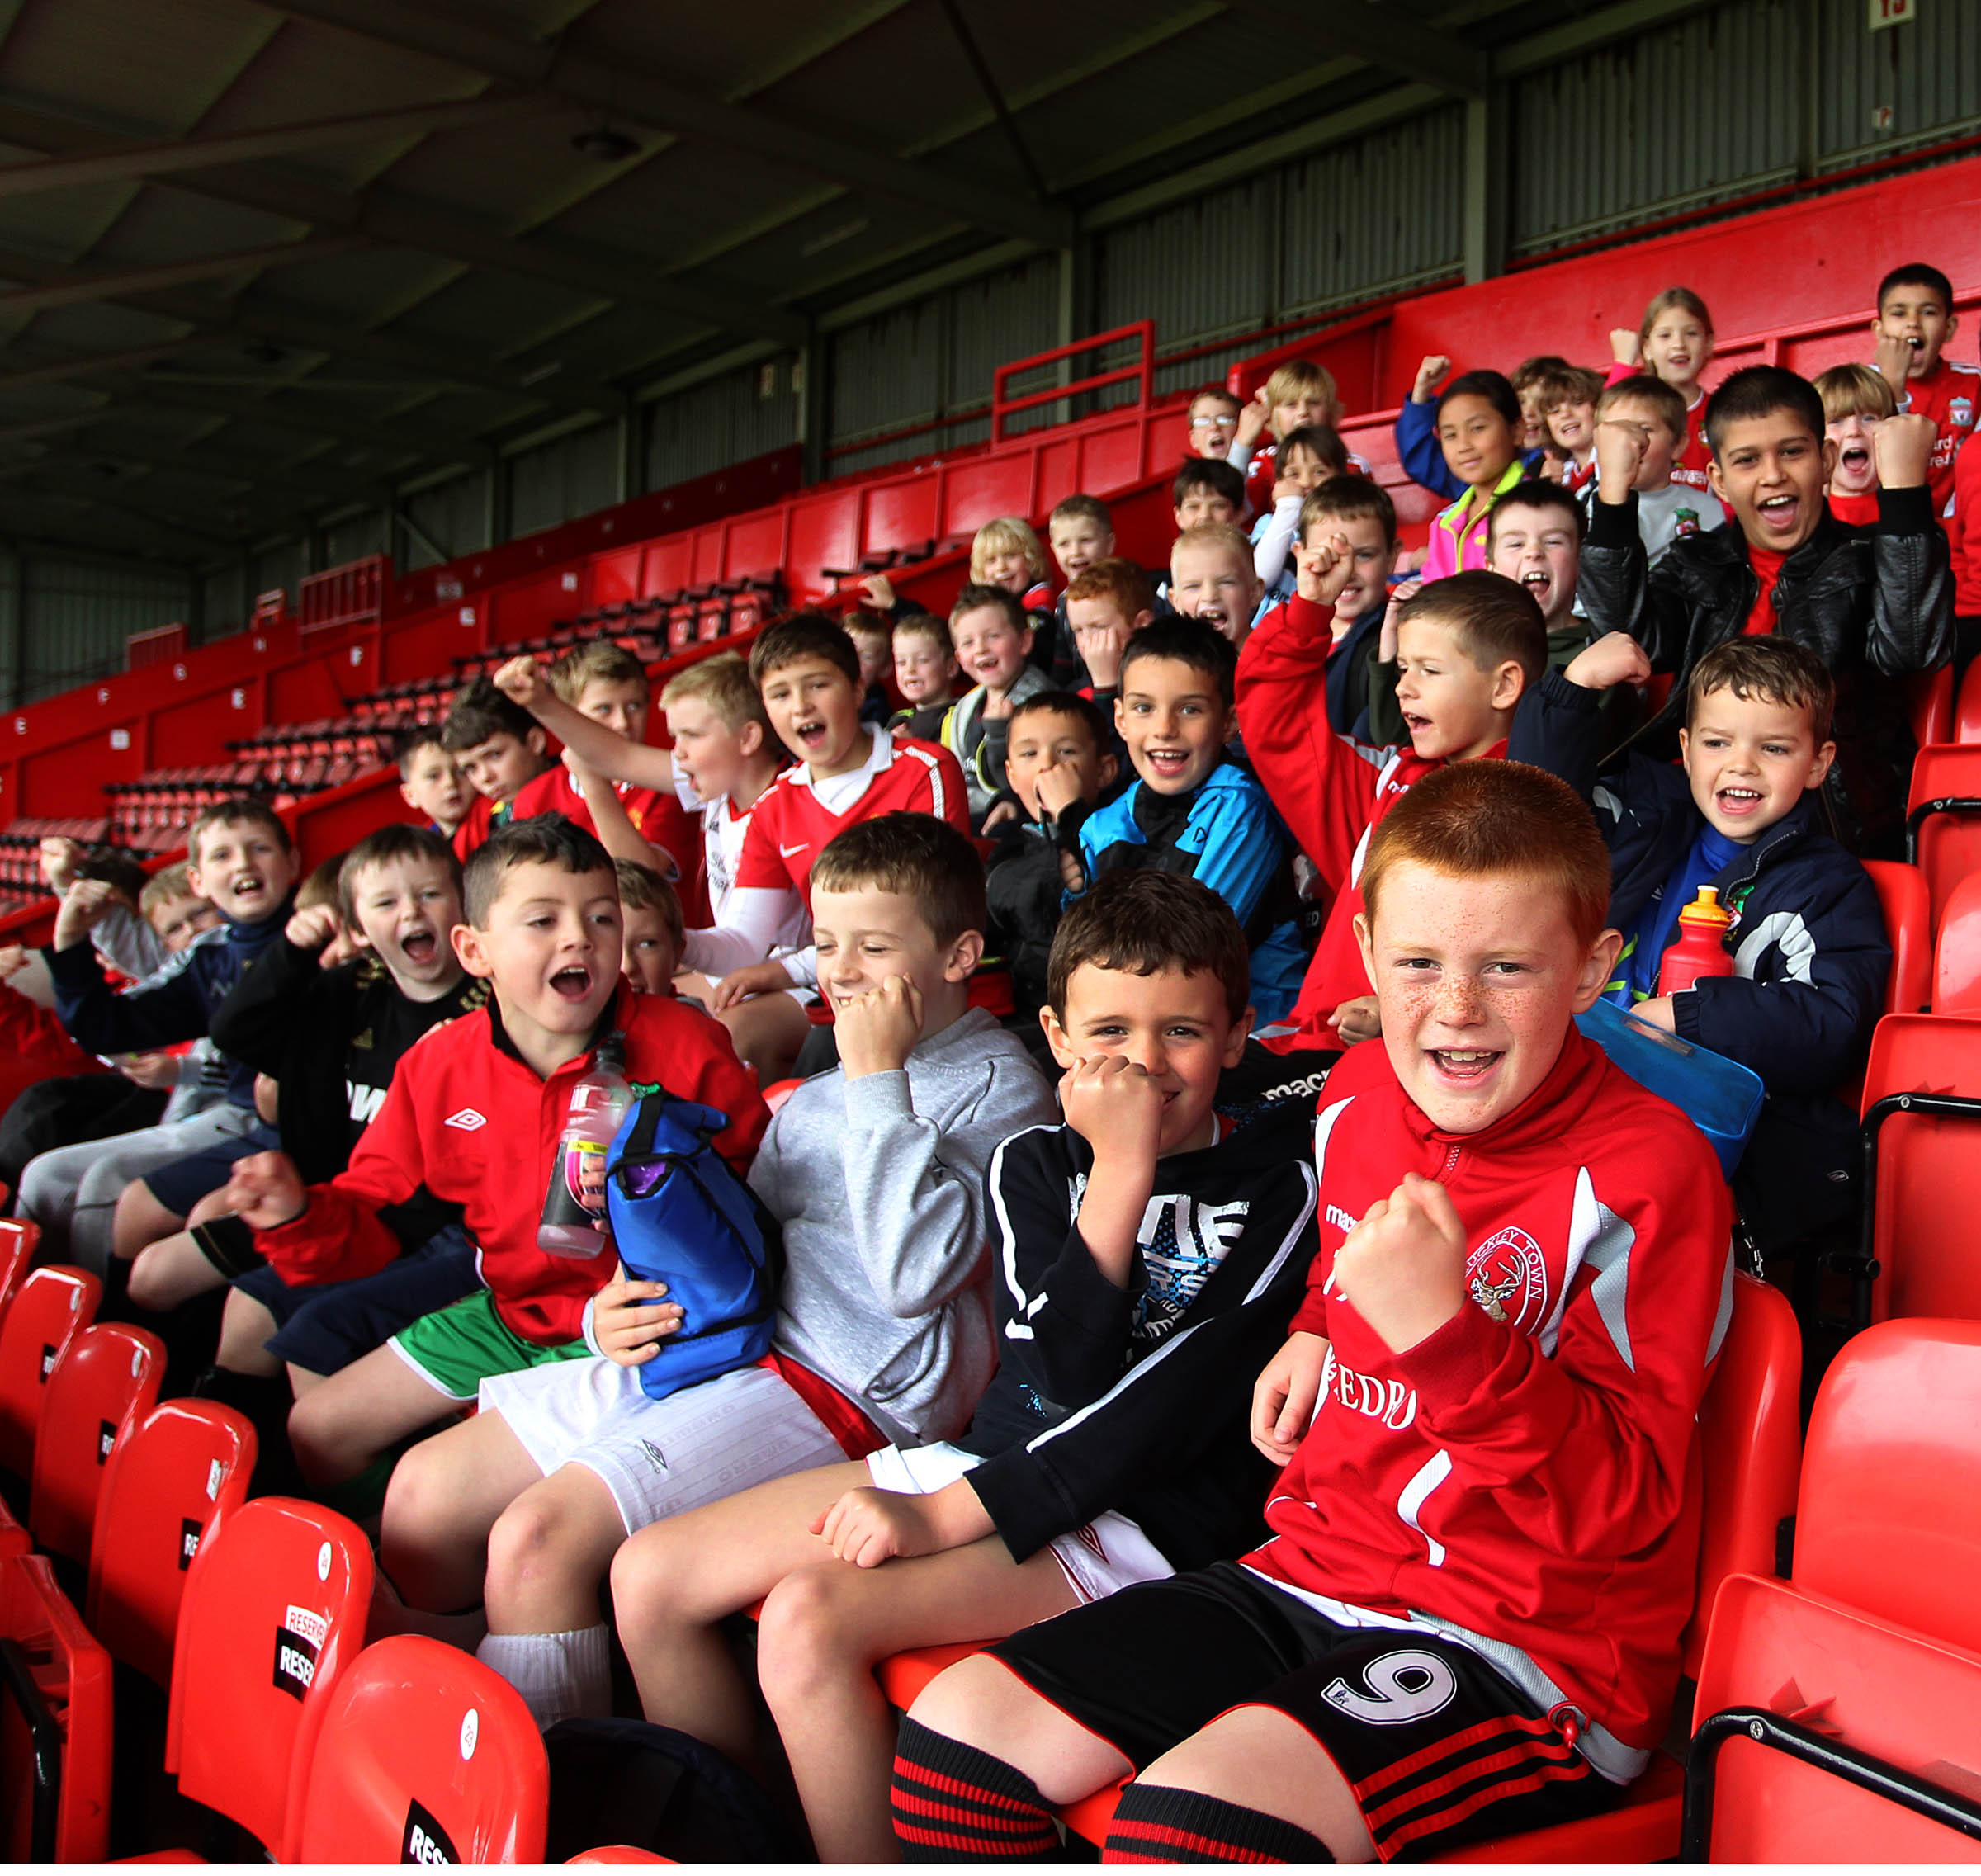 Wrexham Football Foundation as a prt of their holiday training scheme the members met some of the First team players at a question and answer session at the Racecourse